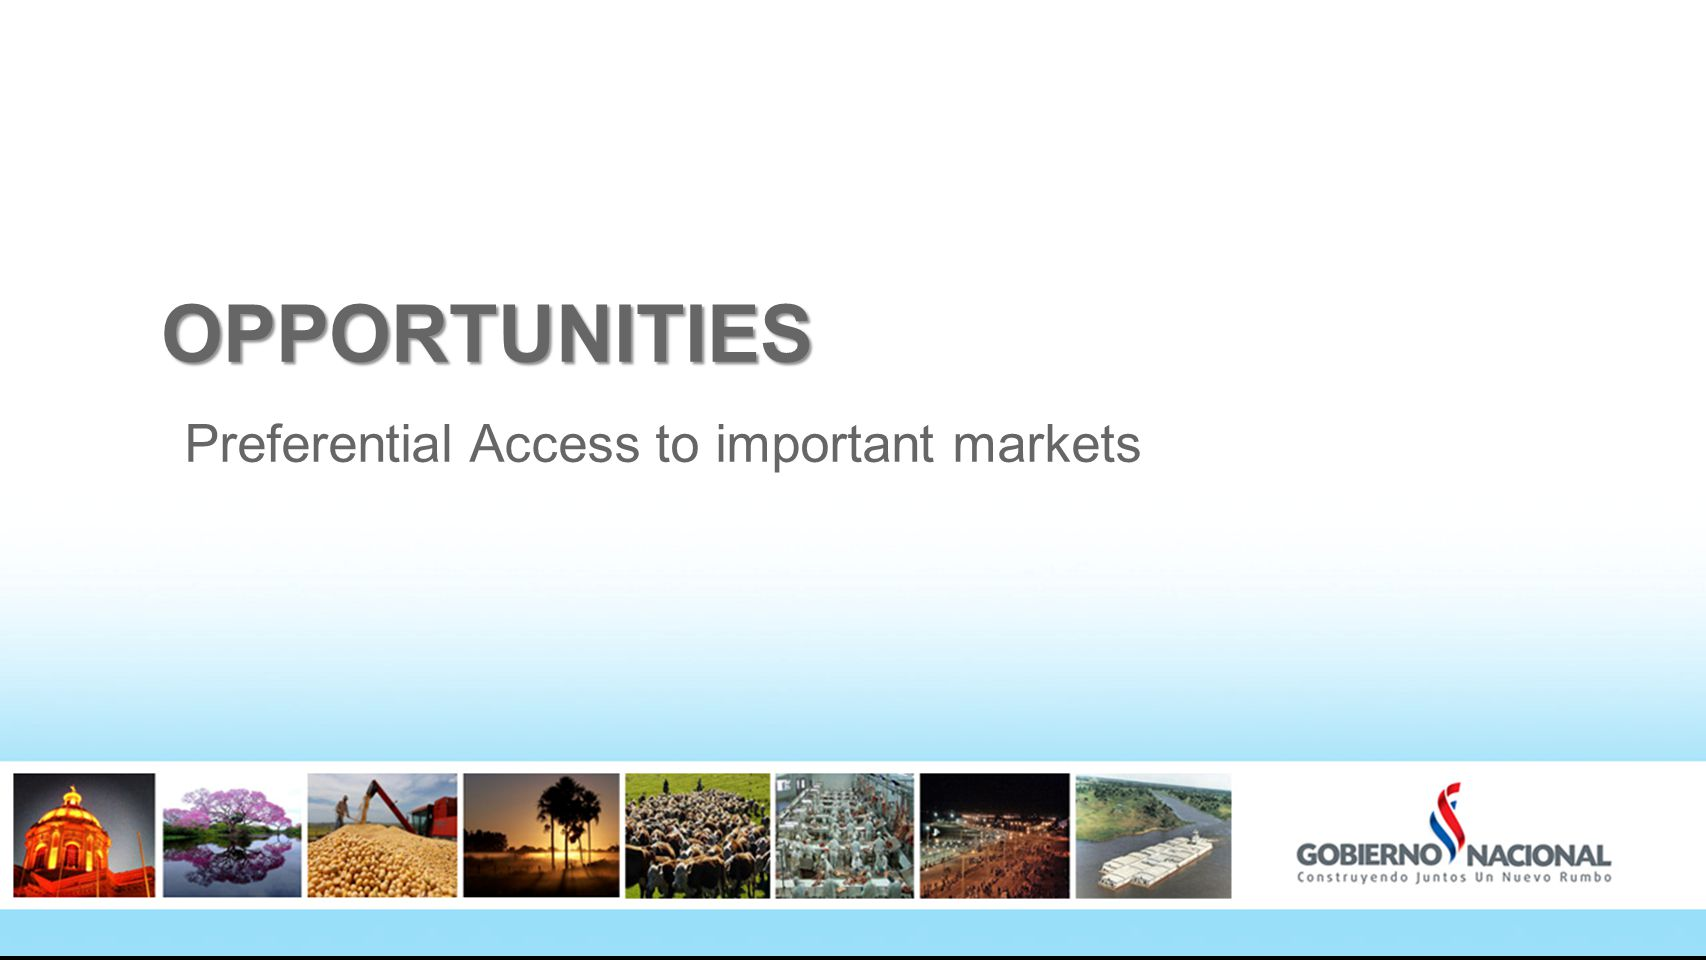 OPPORTUNITIES Preferential Access to important markets